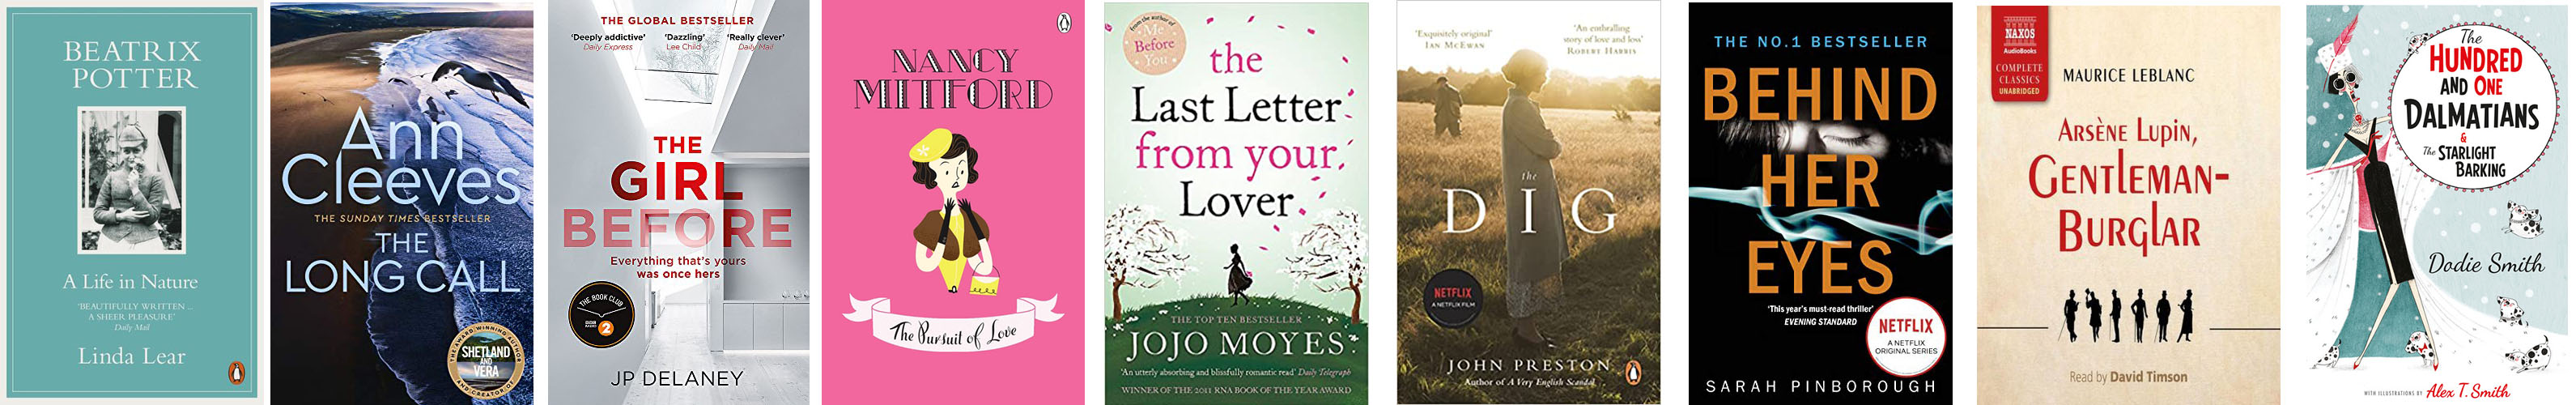 Image shows a selection of book covers